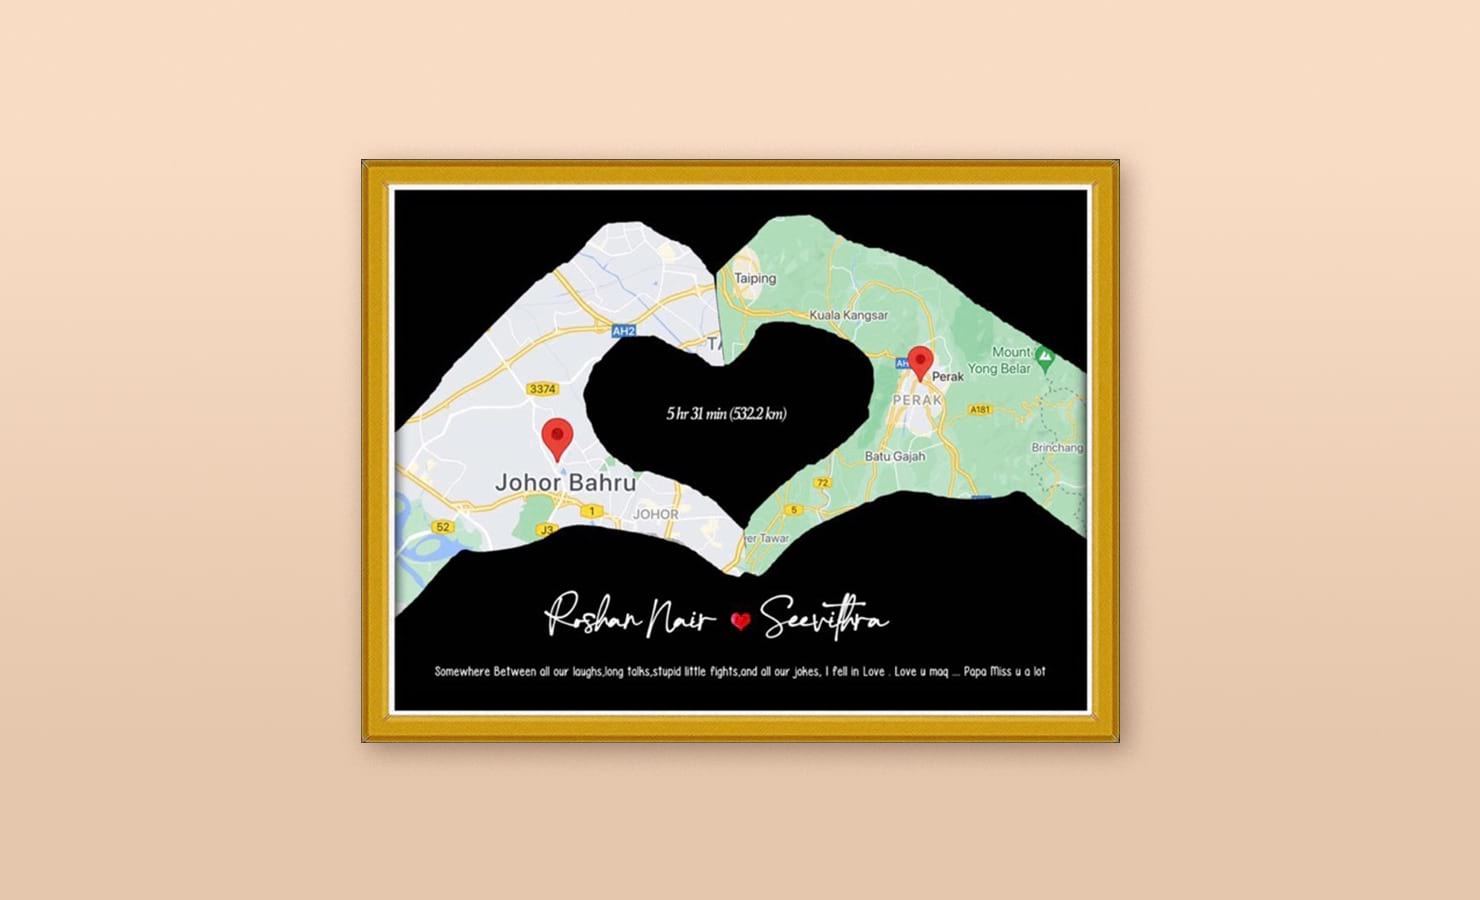 bloomthis-qixi-festival-gift-guide-2021-14-LDR-heart-map